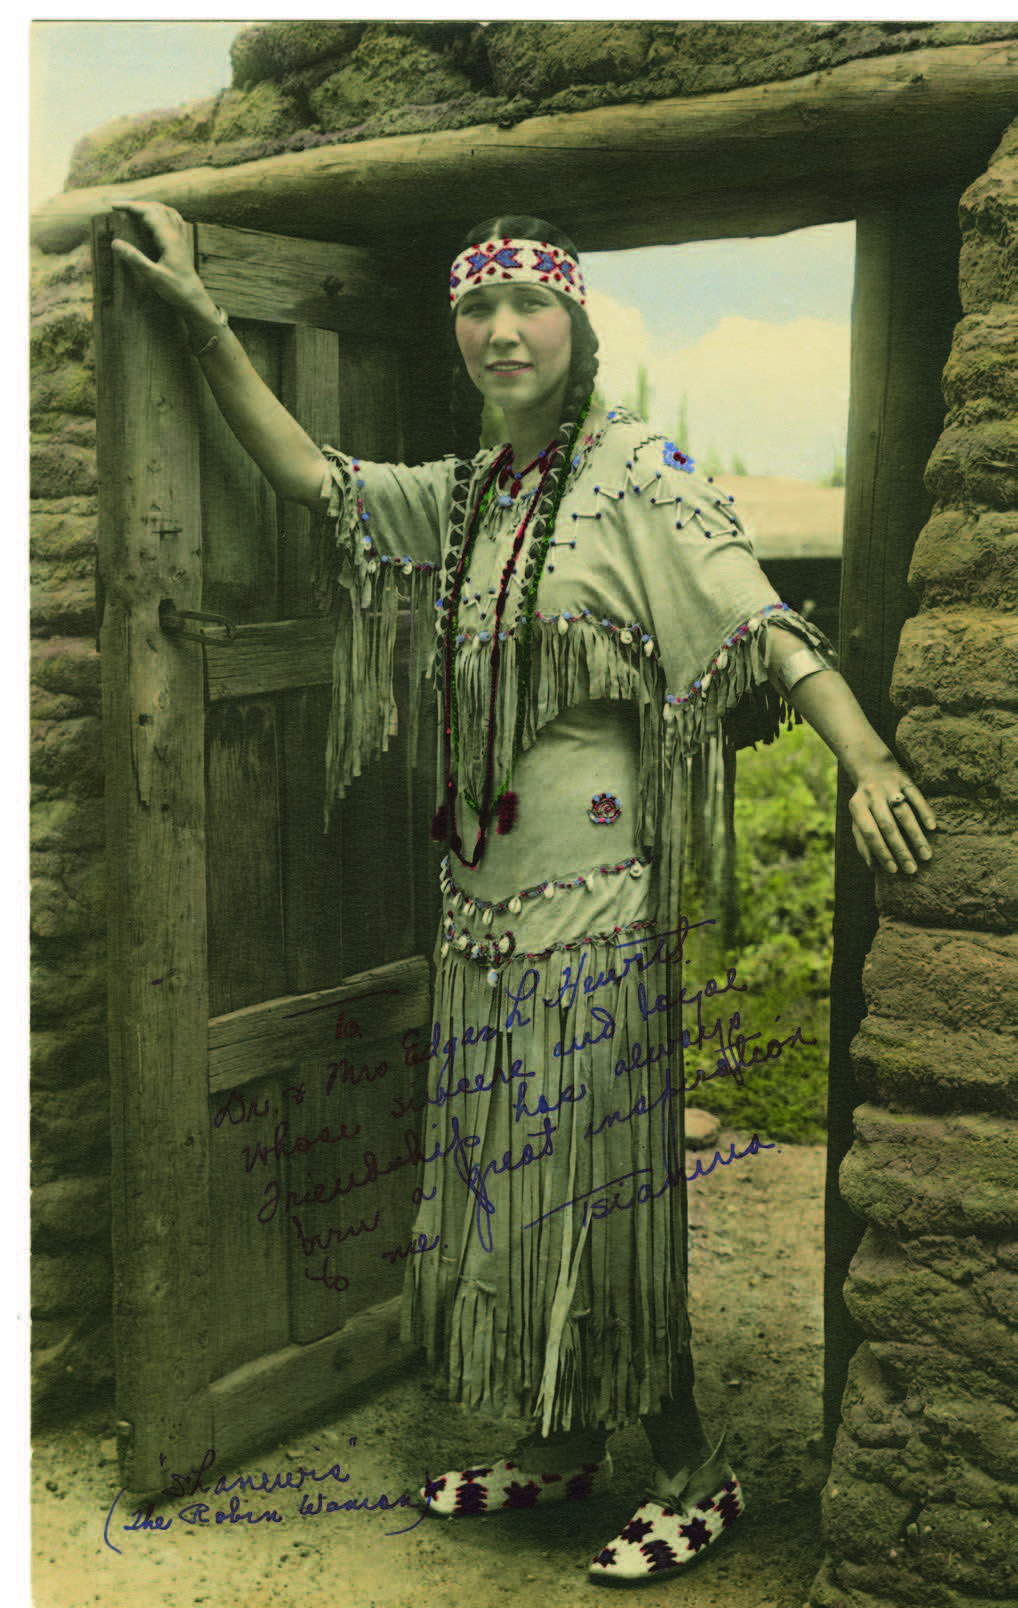 Tsianina Redfeather Blackstone, Santa Fe, New Mexico. Hand-colored photograph, photographer unknown, 1924. Palace of the Governors Photo Archives (NMHM/DCA), Neg. No. 011234.